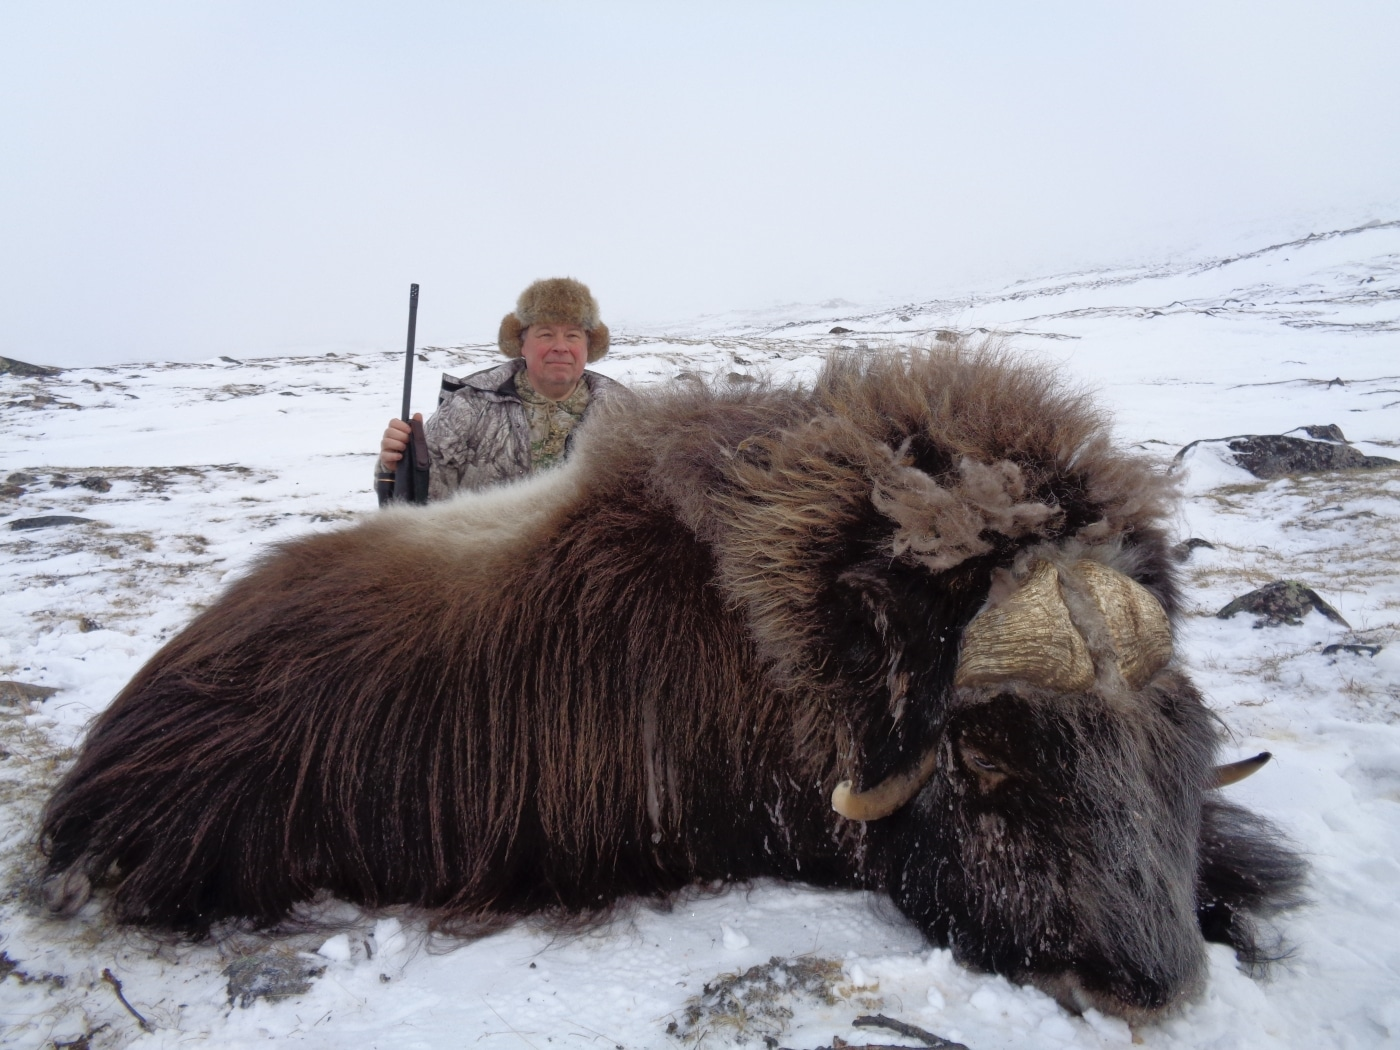 Musk ox in winter. Photo by Trophy Hunting Greenland, Visit Greenland